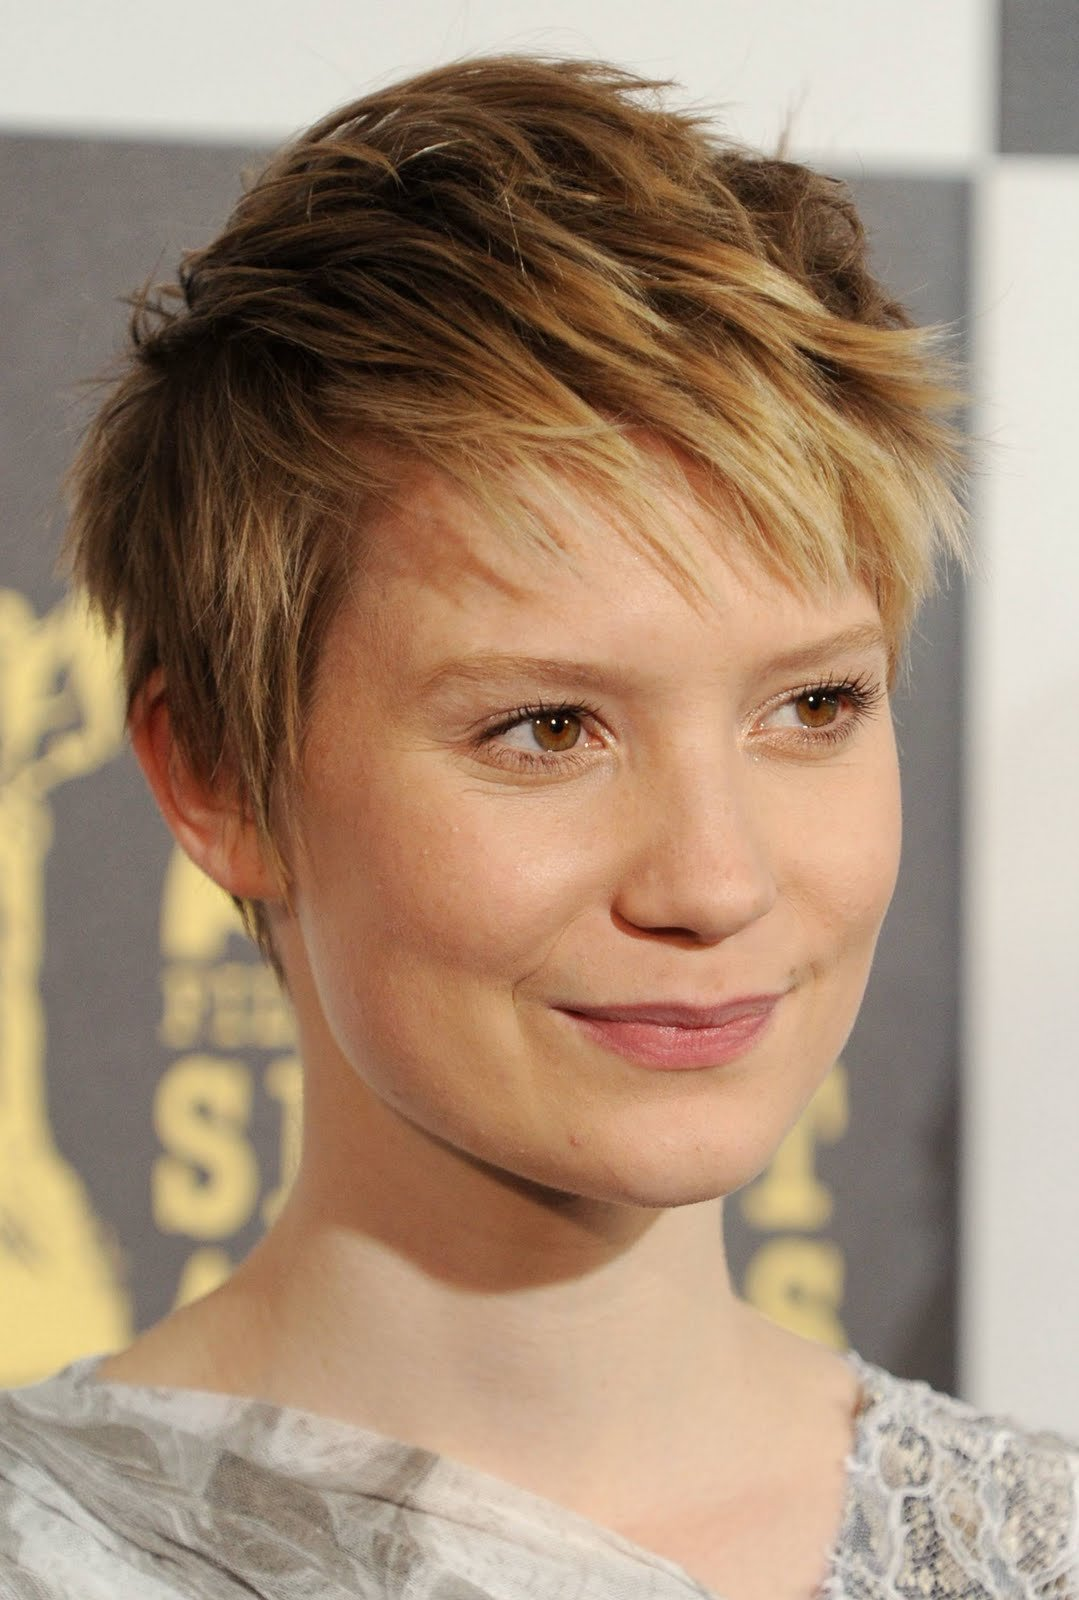 The Best Kafgallery Celebrity Favorite Short Pixie Hairstyles Of 2012 Pictures